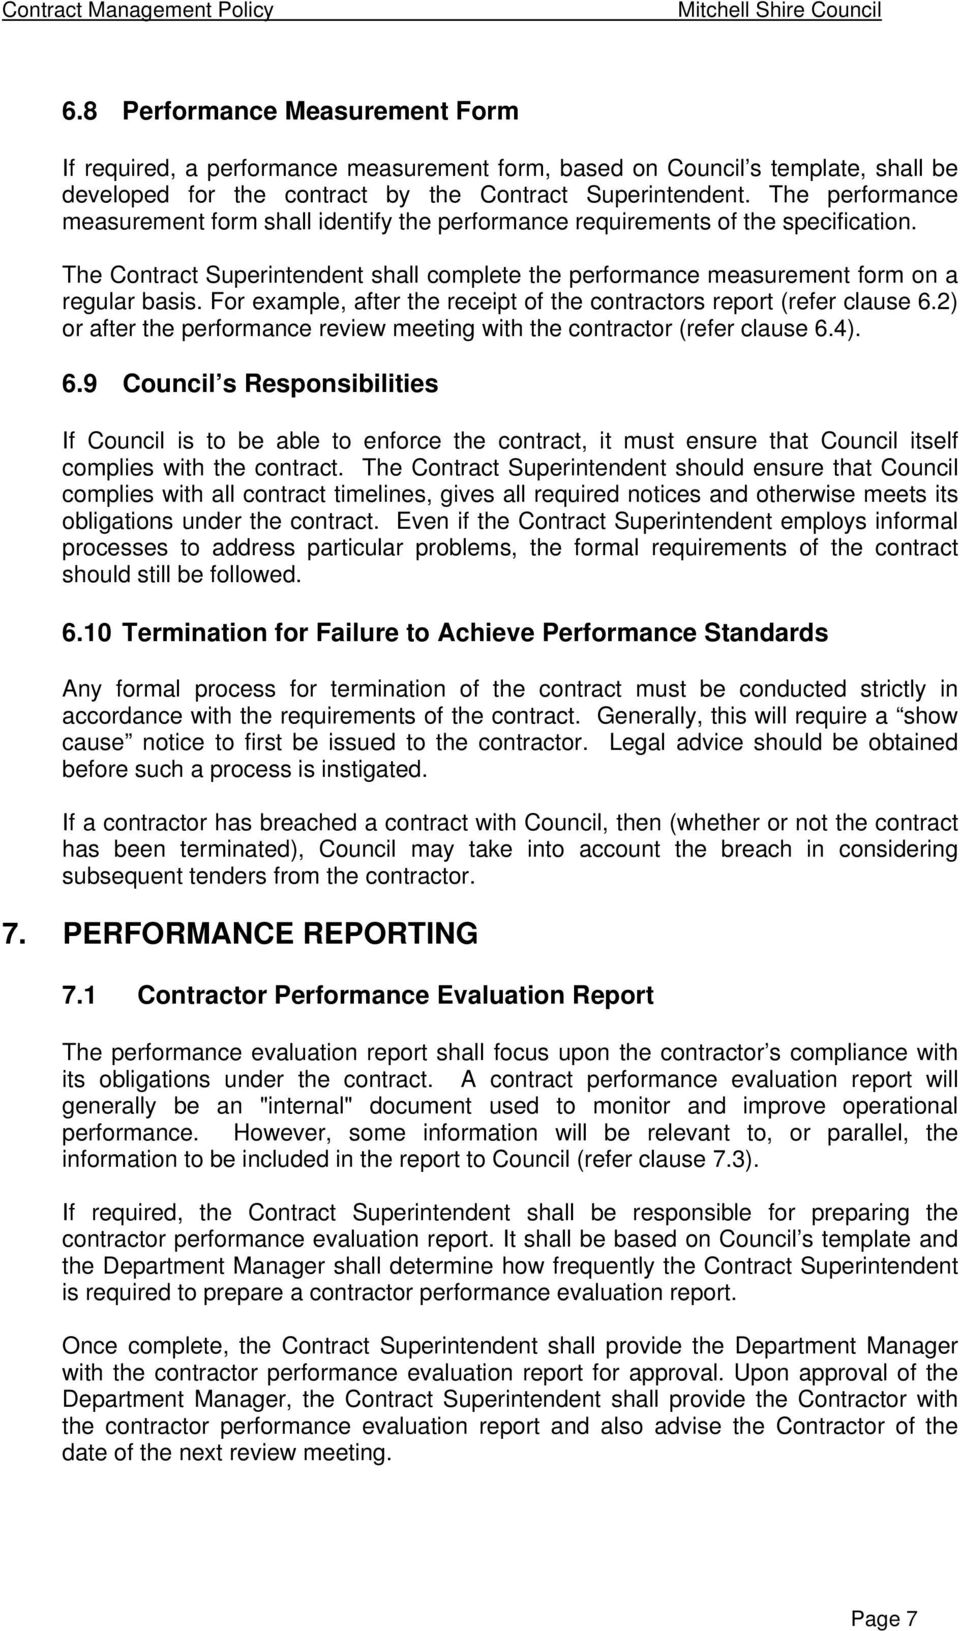 The performance measurement form shall identify the performance requirements of the specification. The Contract Superintendent shall complete the performance measurement form on a regular basis.